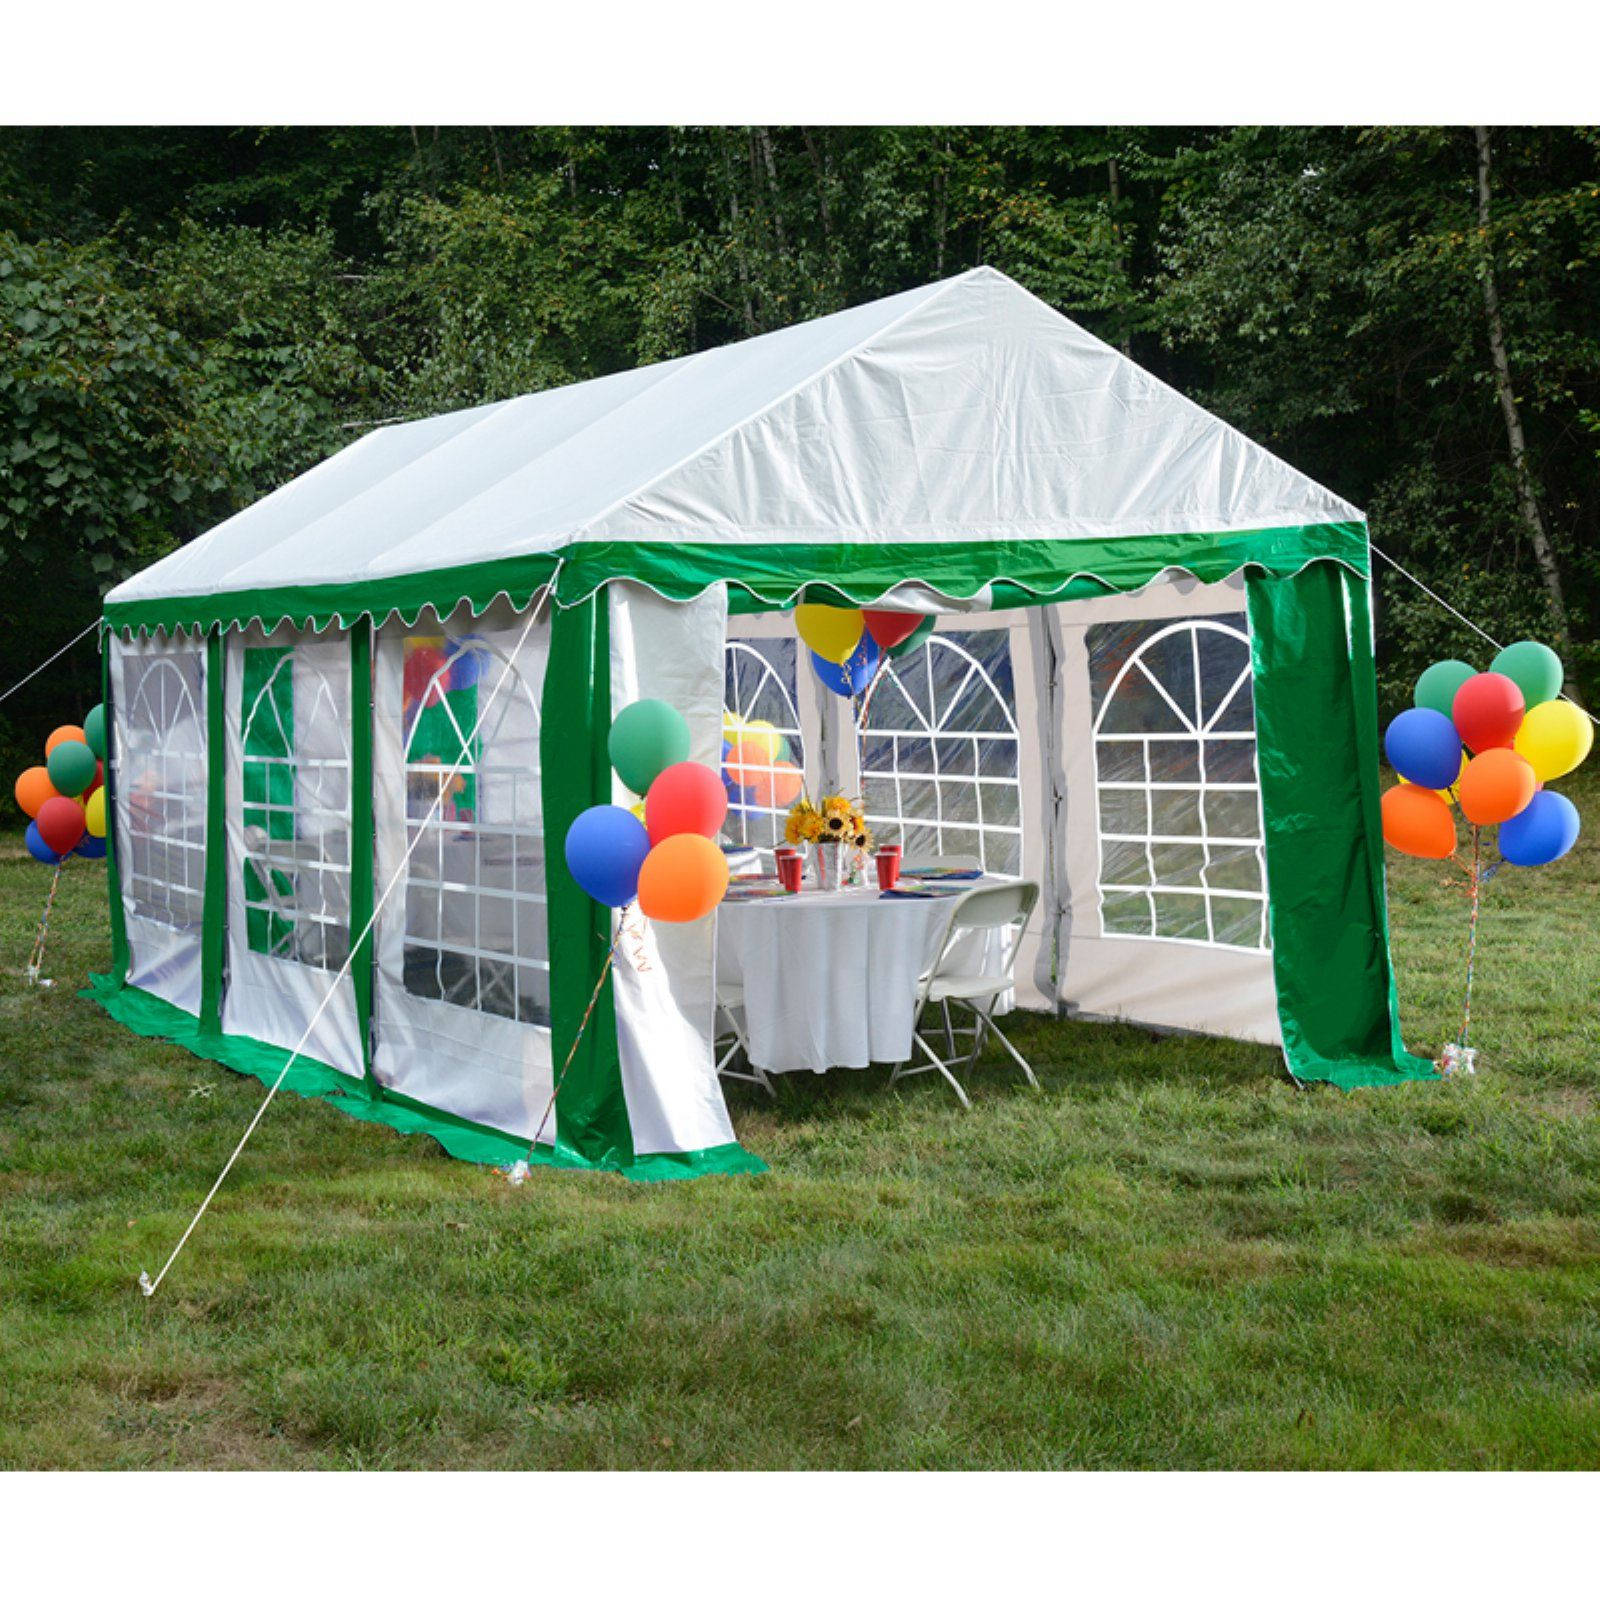 ShelterLogic 10 x 20 ft. Canopy & Enclosure Kit Green